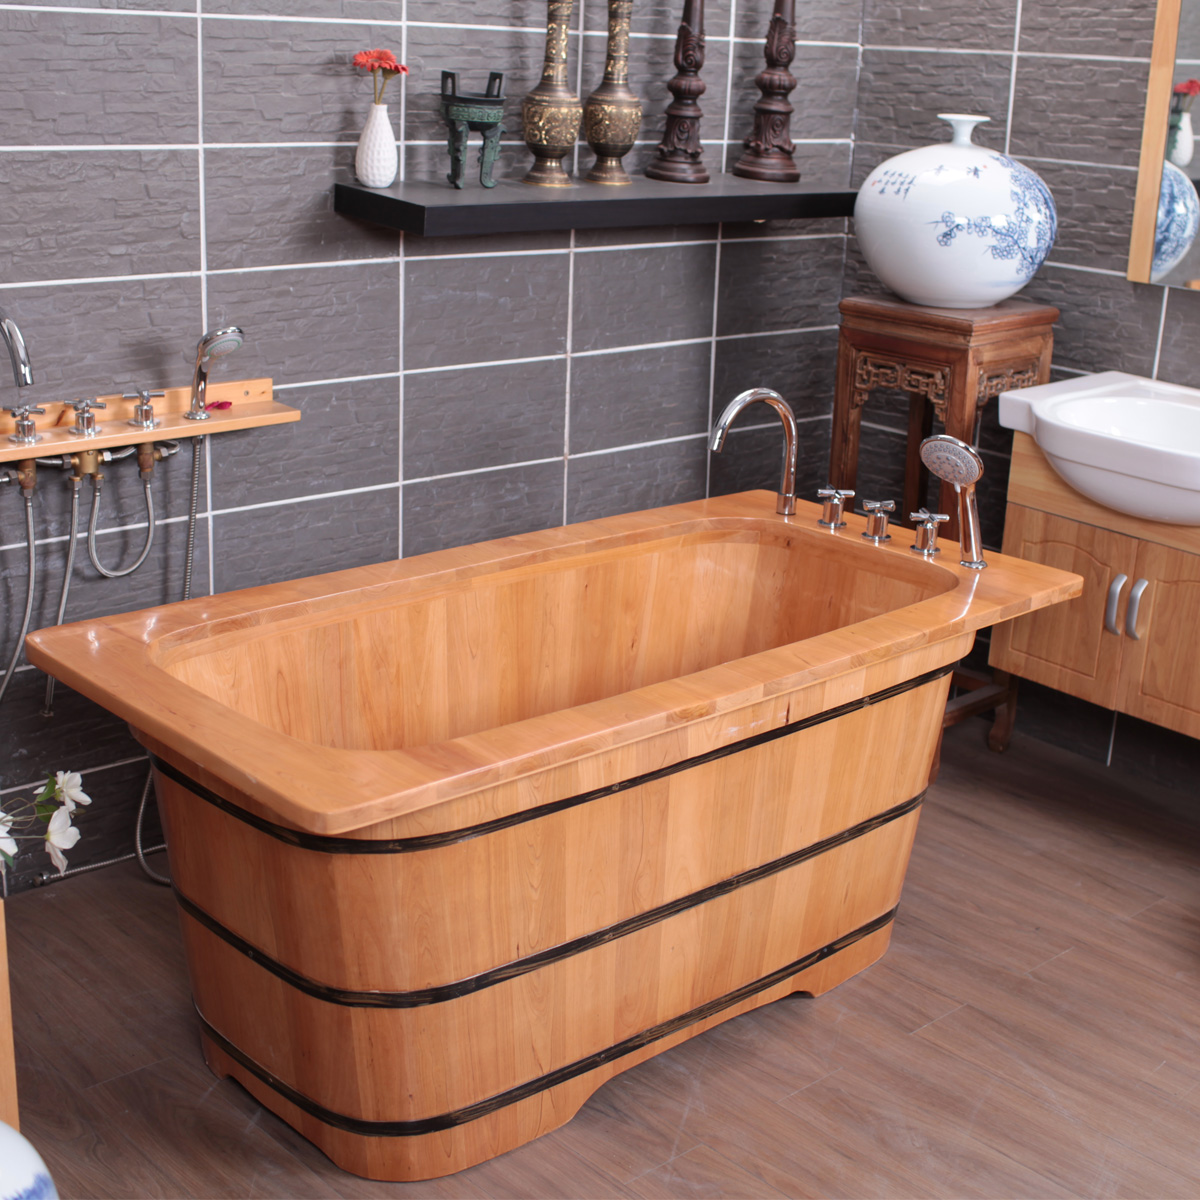 Oak Luxury Wooden Barrel Bath Tub In Water Tub Bathtub Bathtub Bathtub Bathtub Bathtub Bathtub Bathtub Bathtub Bathtub Bathtub Bathtub Bathtub Bathtub Bathtub Bathtub Bathtub Bathtub